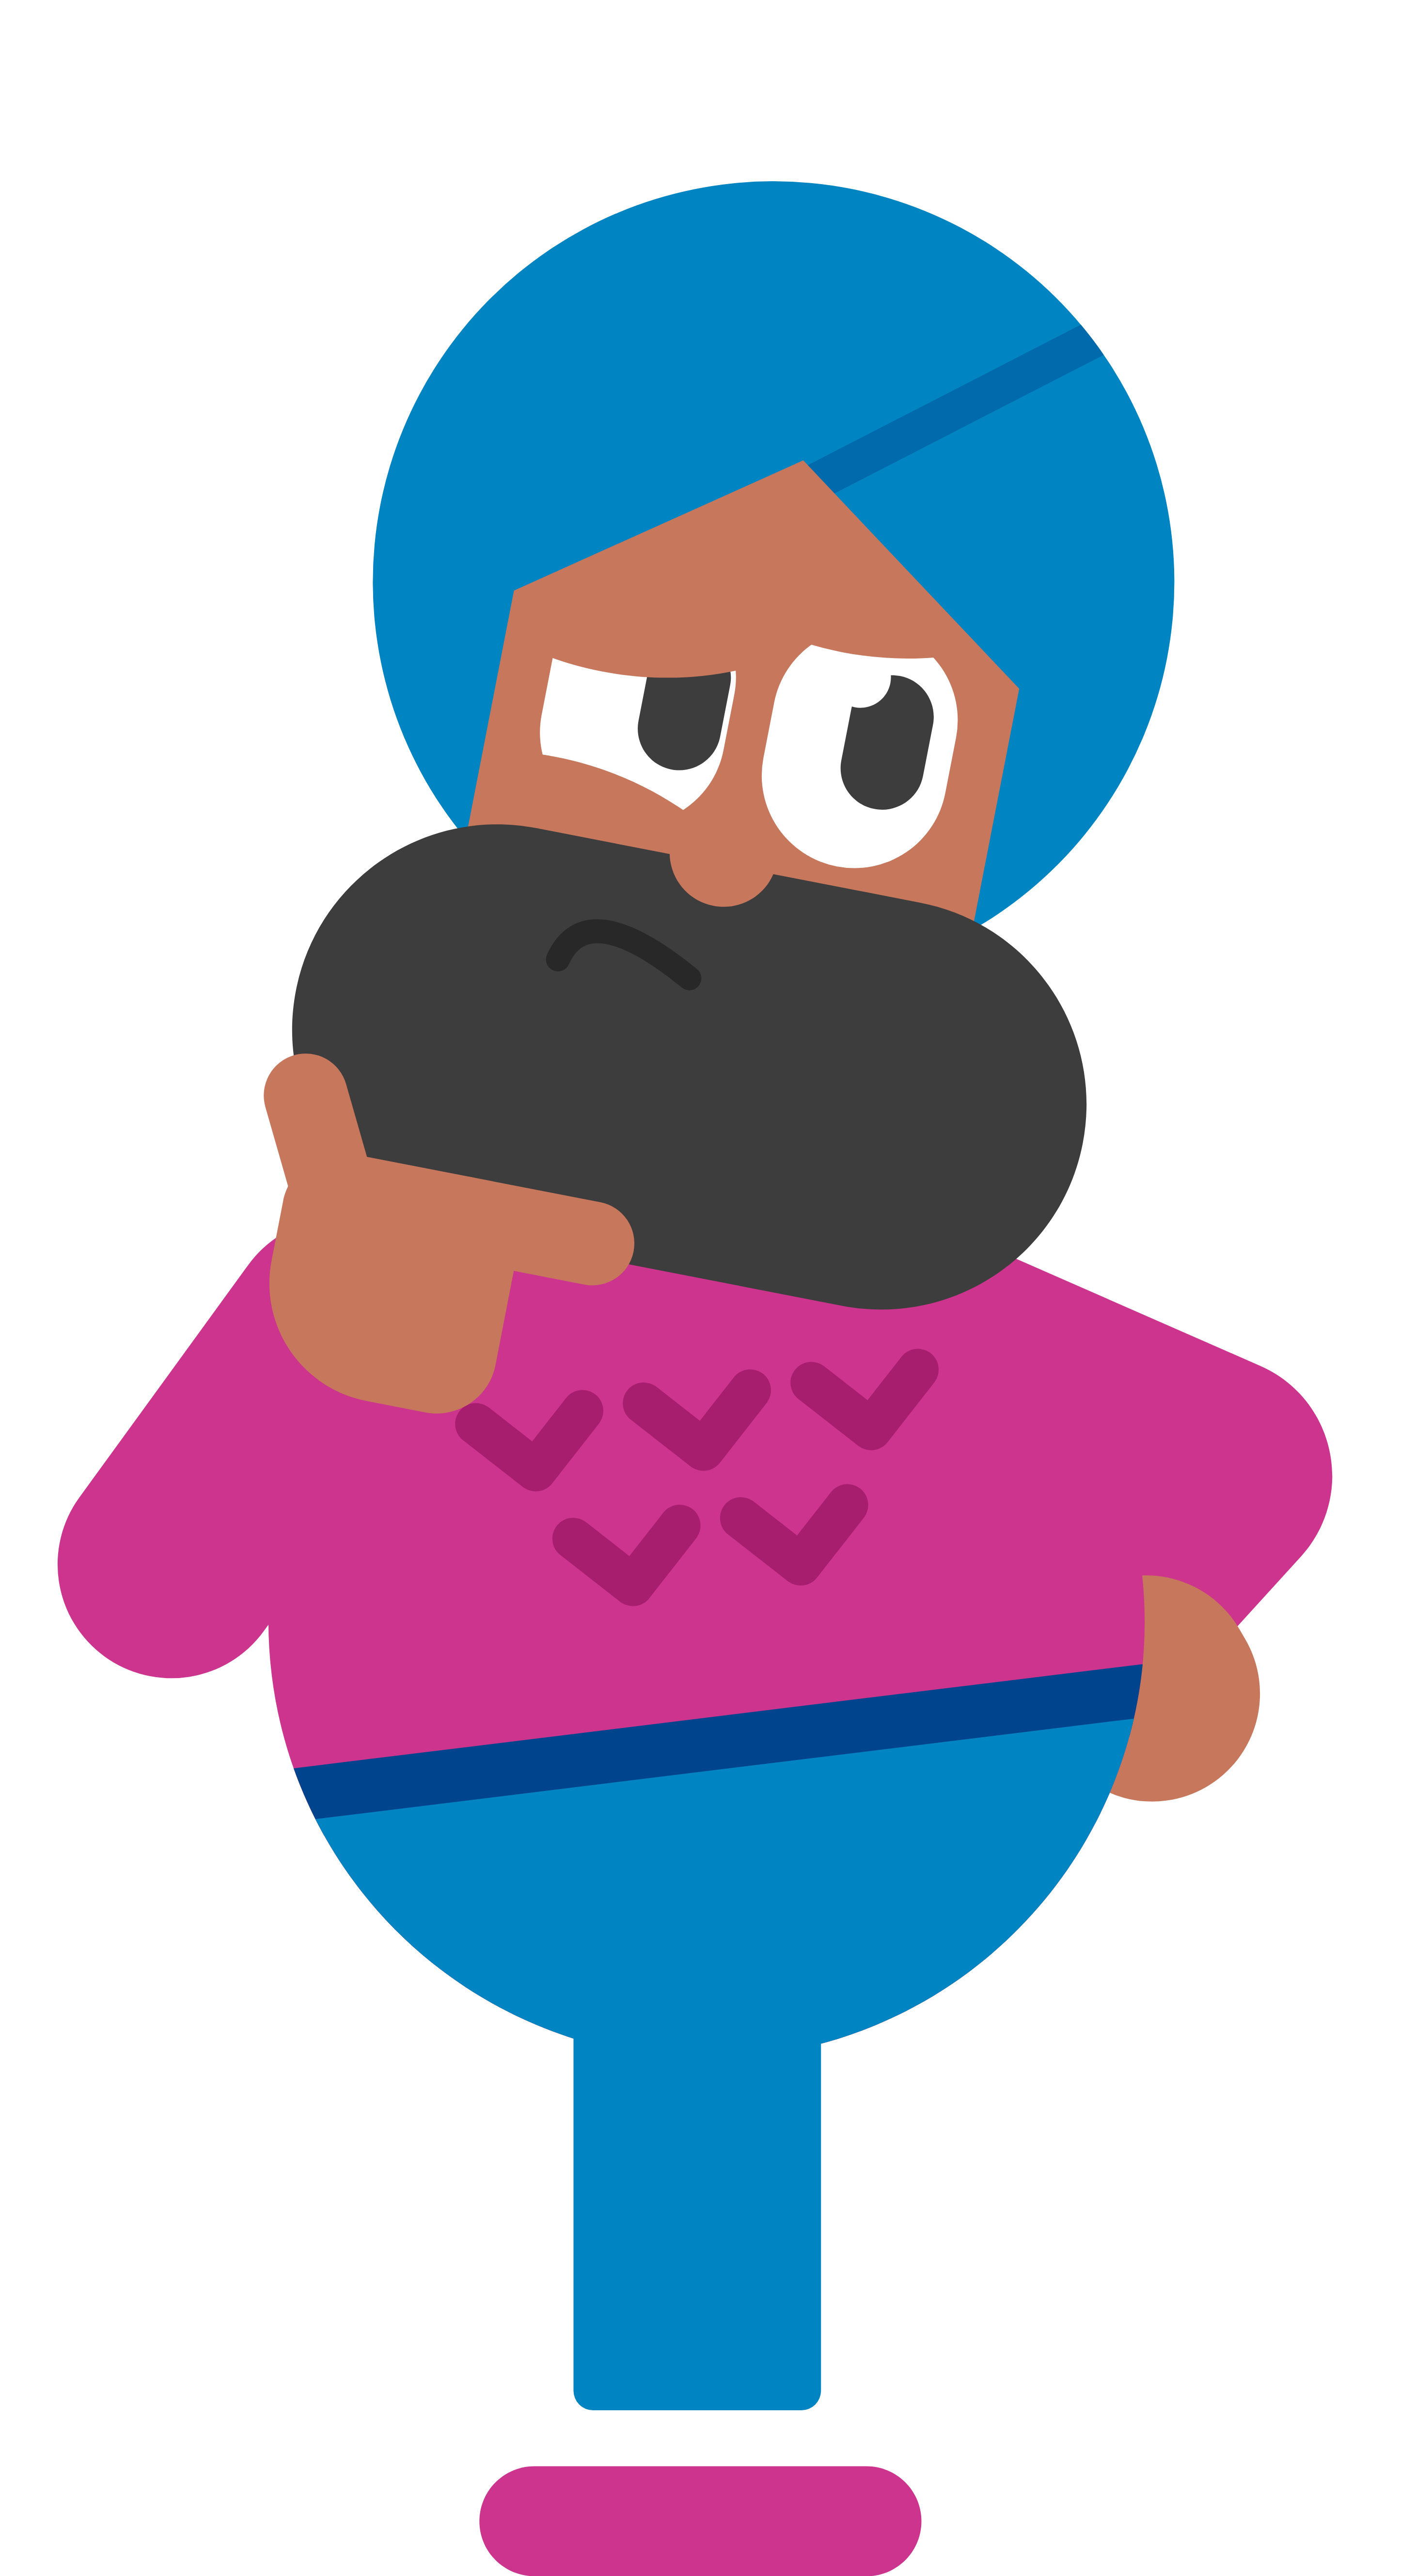 Illustration of the Duolingo character Vikram standing with one hand on his hip, and his other hand holding his beard-covered chin. He looks thoughtful or skeptical